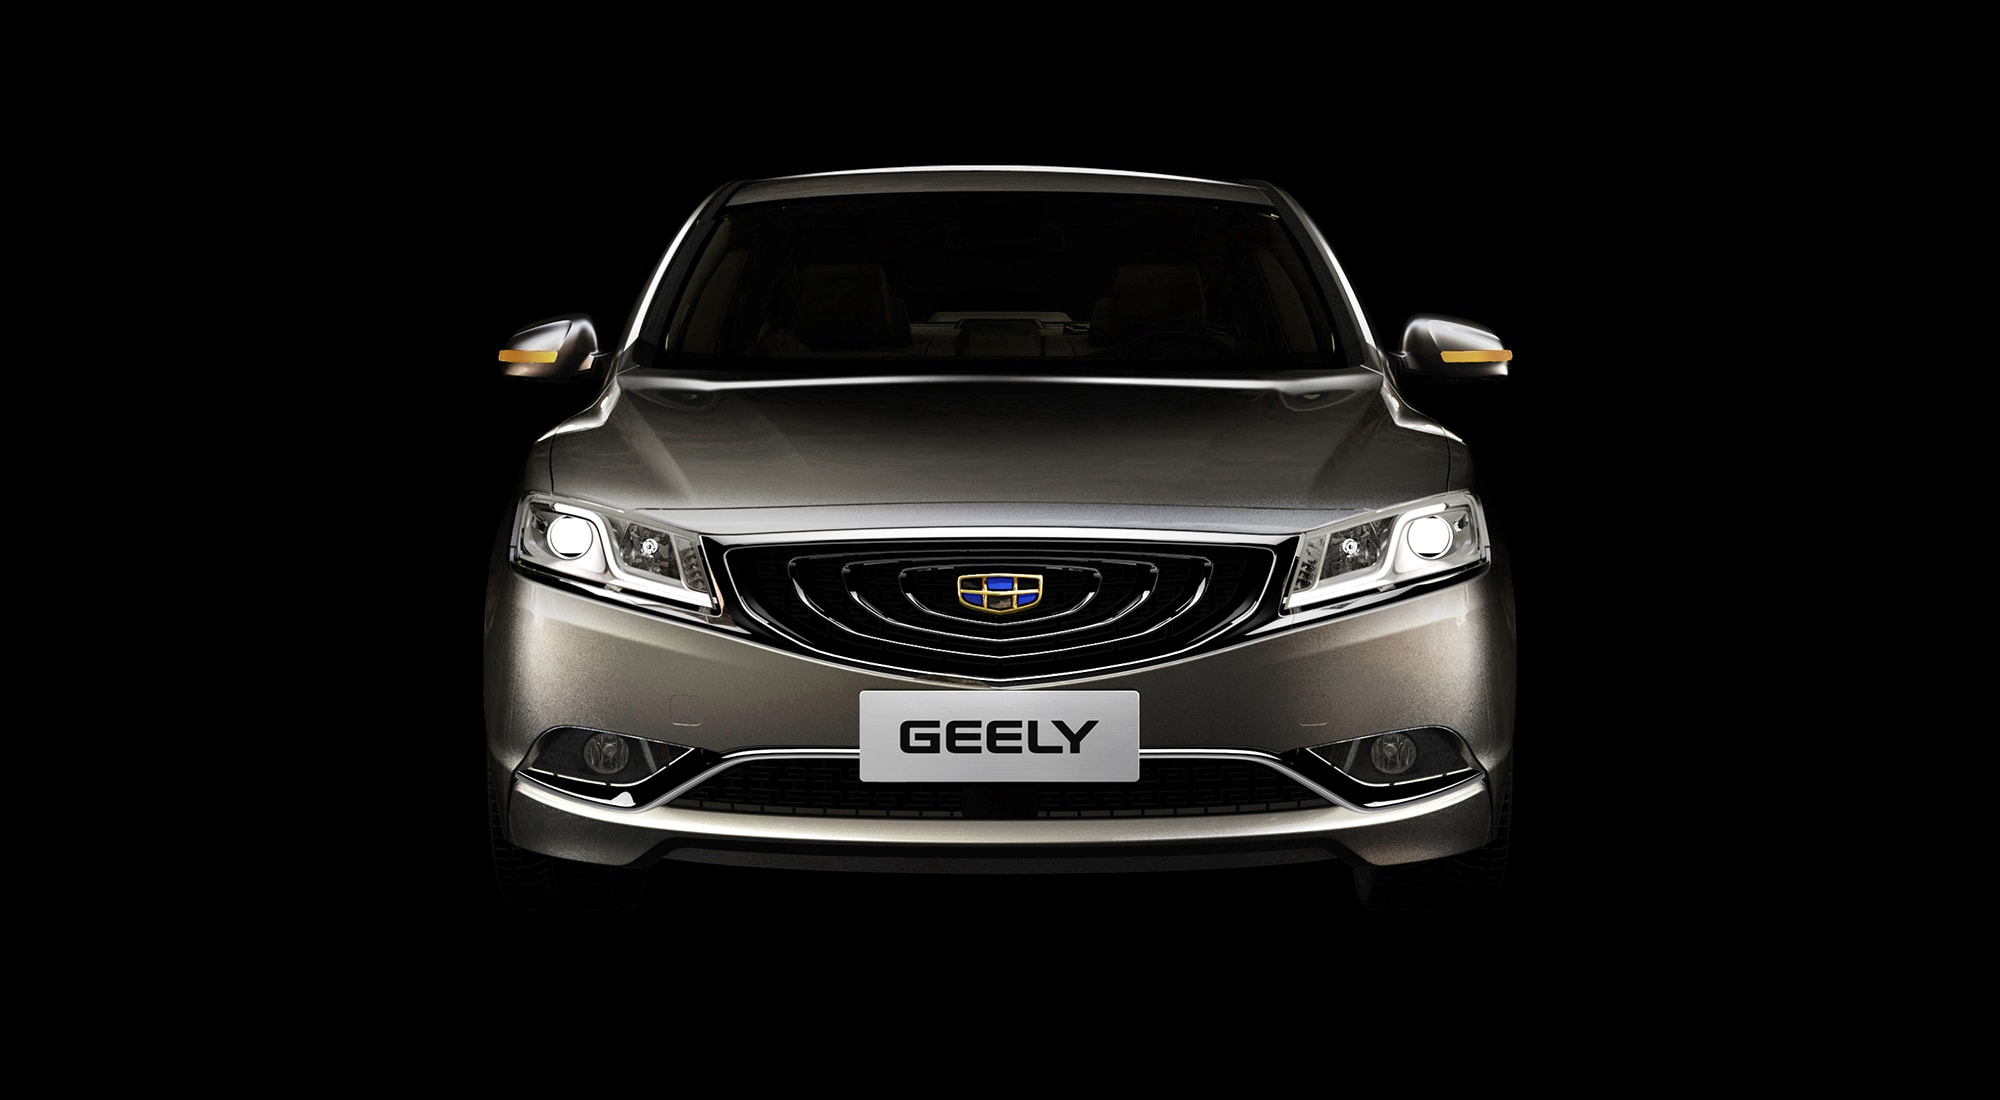 Geely GC9 HQ wallpapers